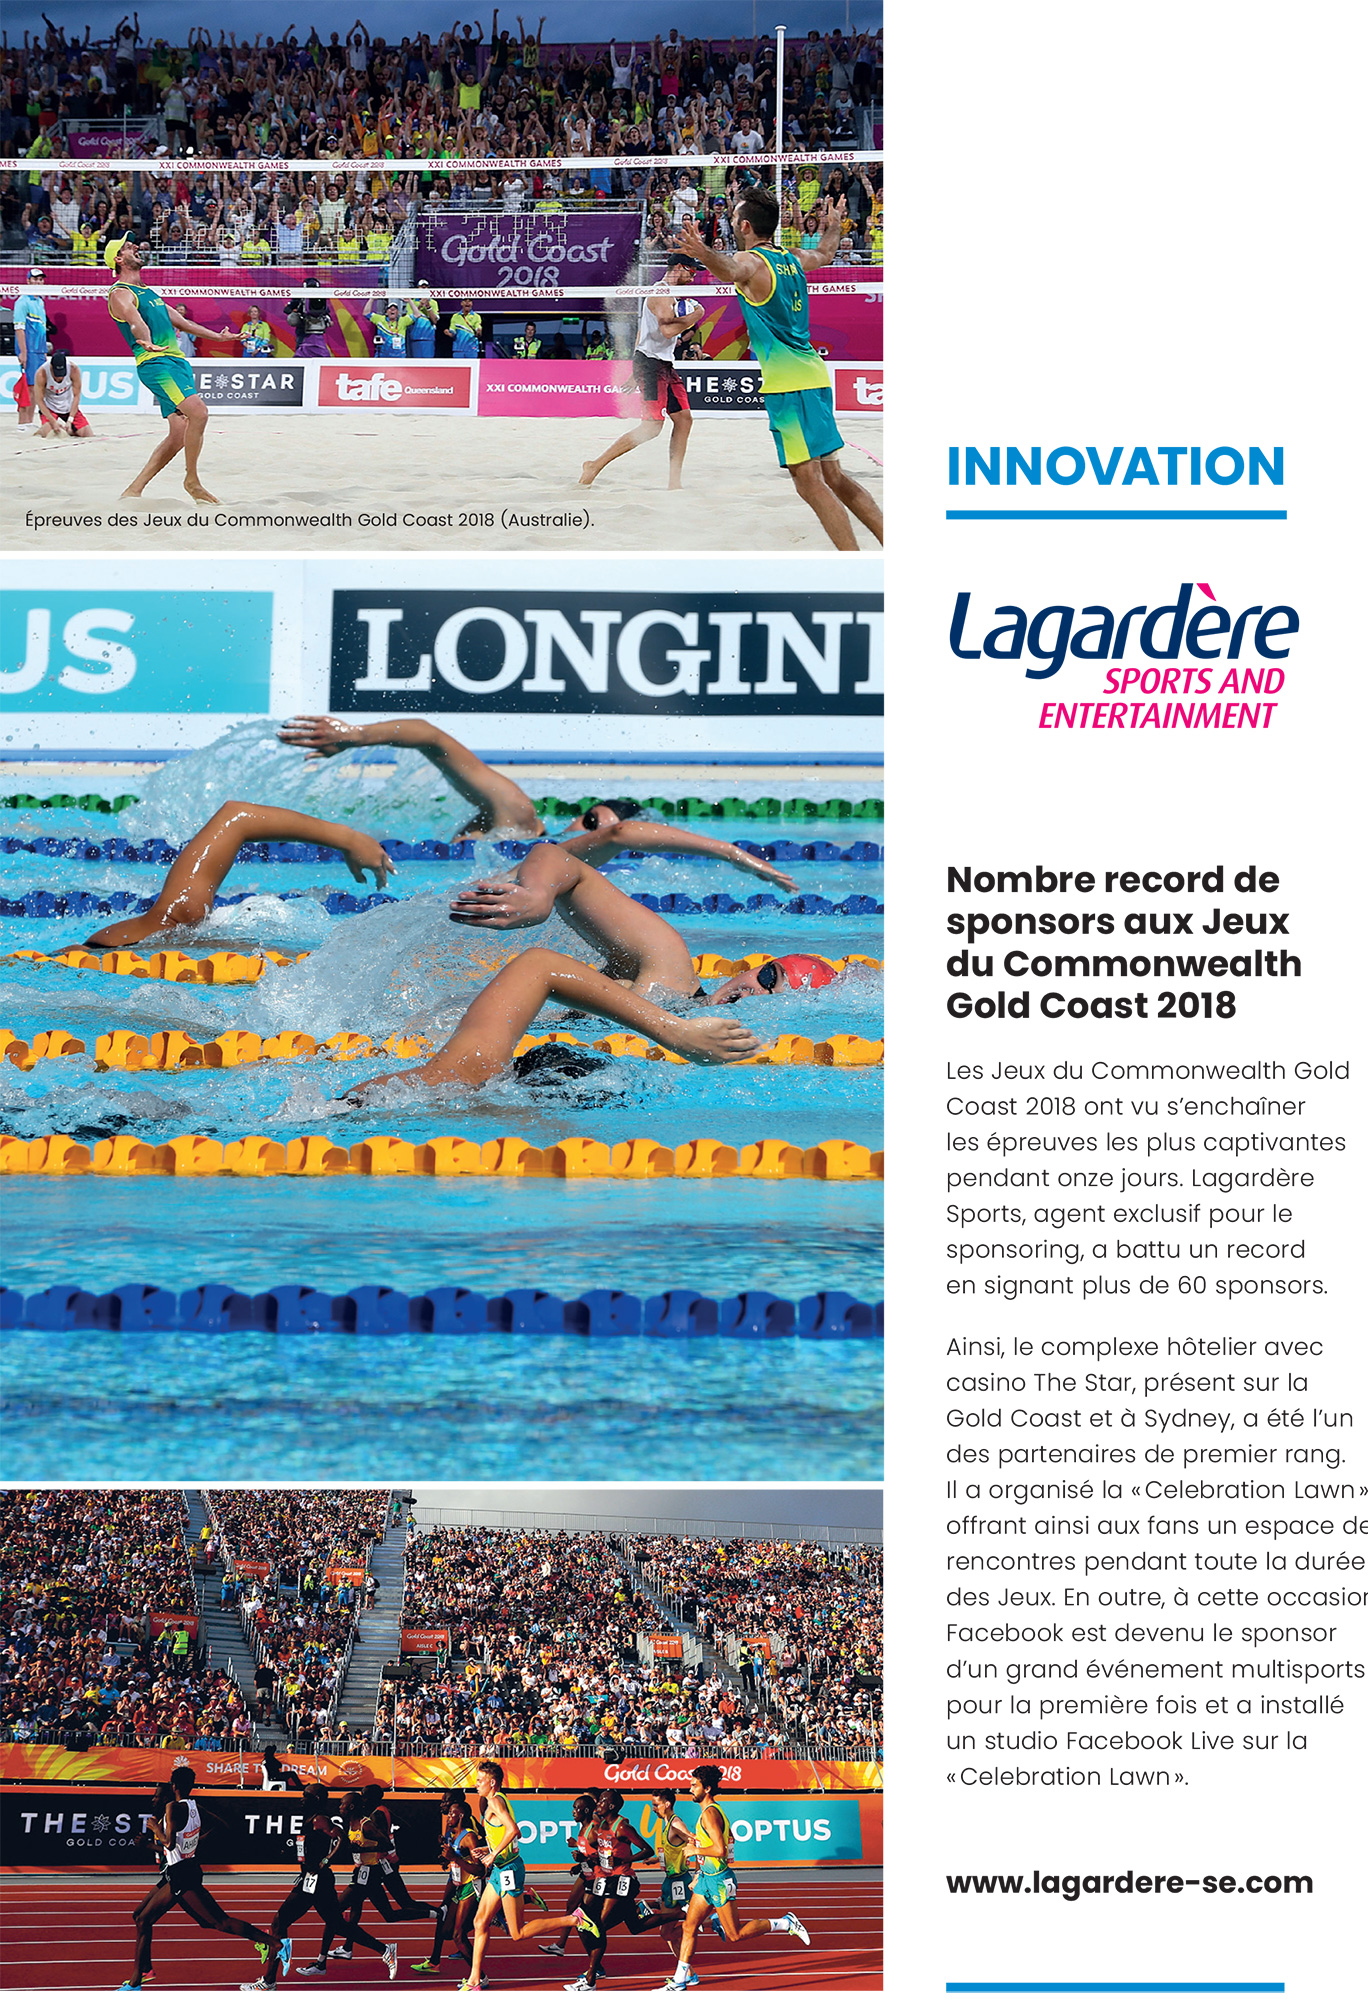 Innovation Lagardère Sports and Entertainment